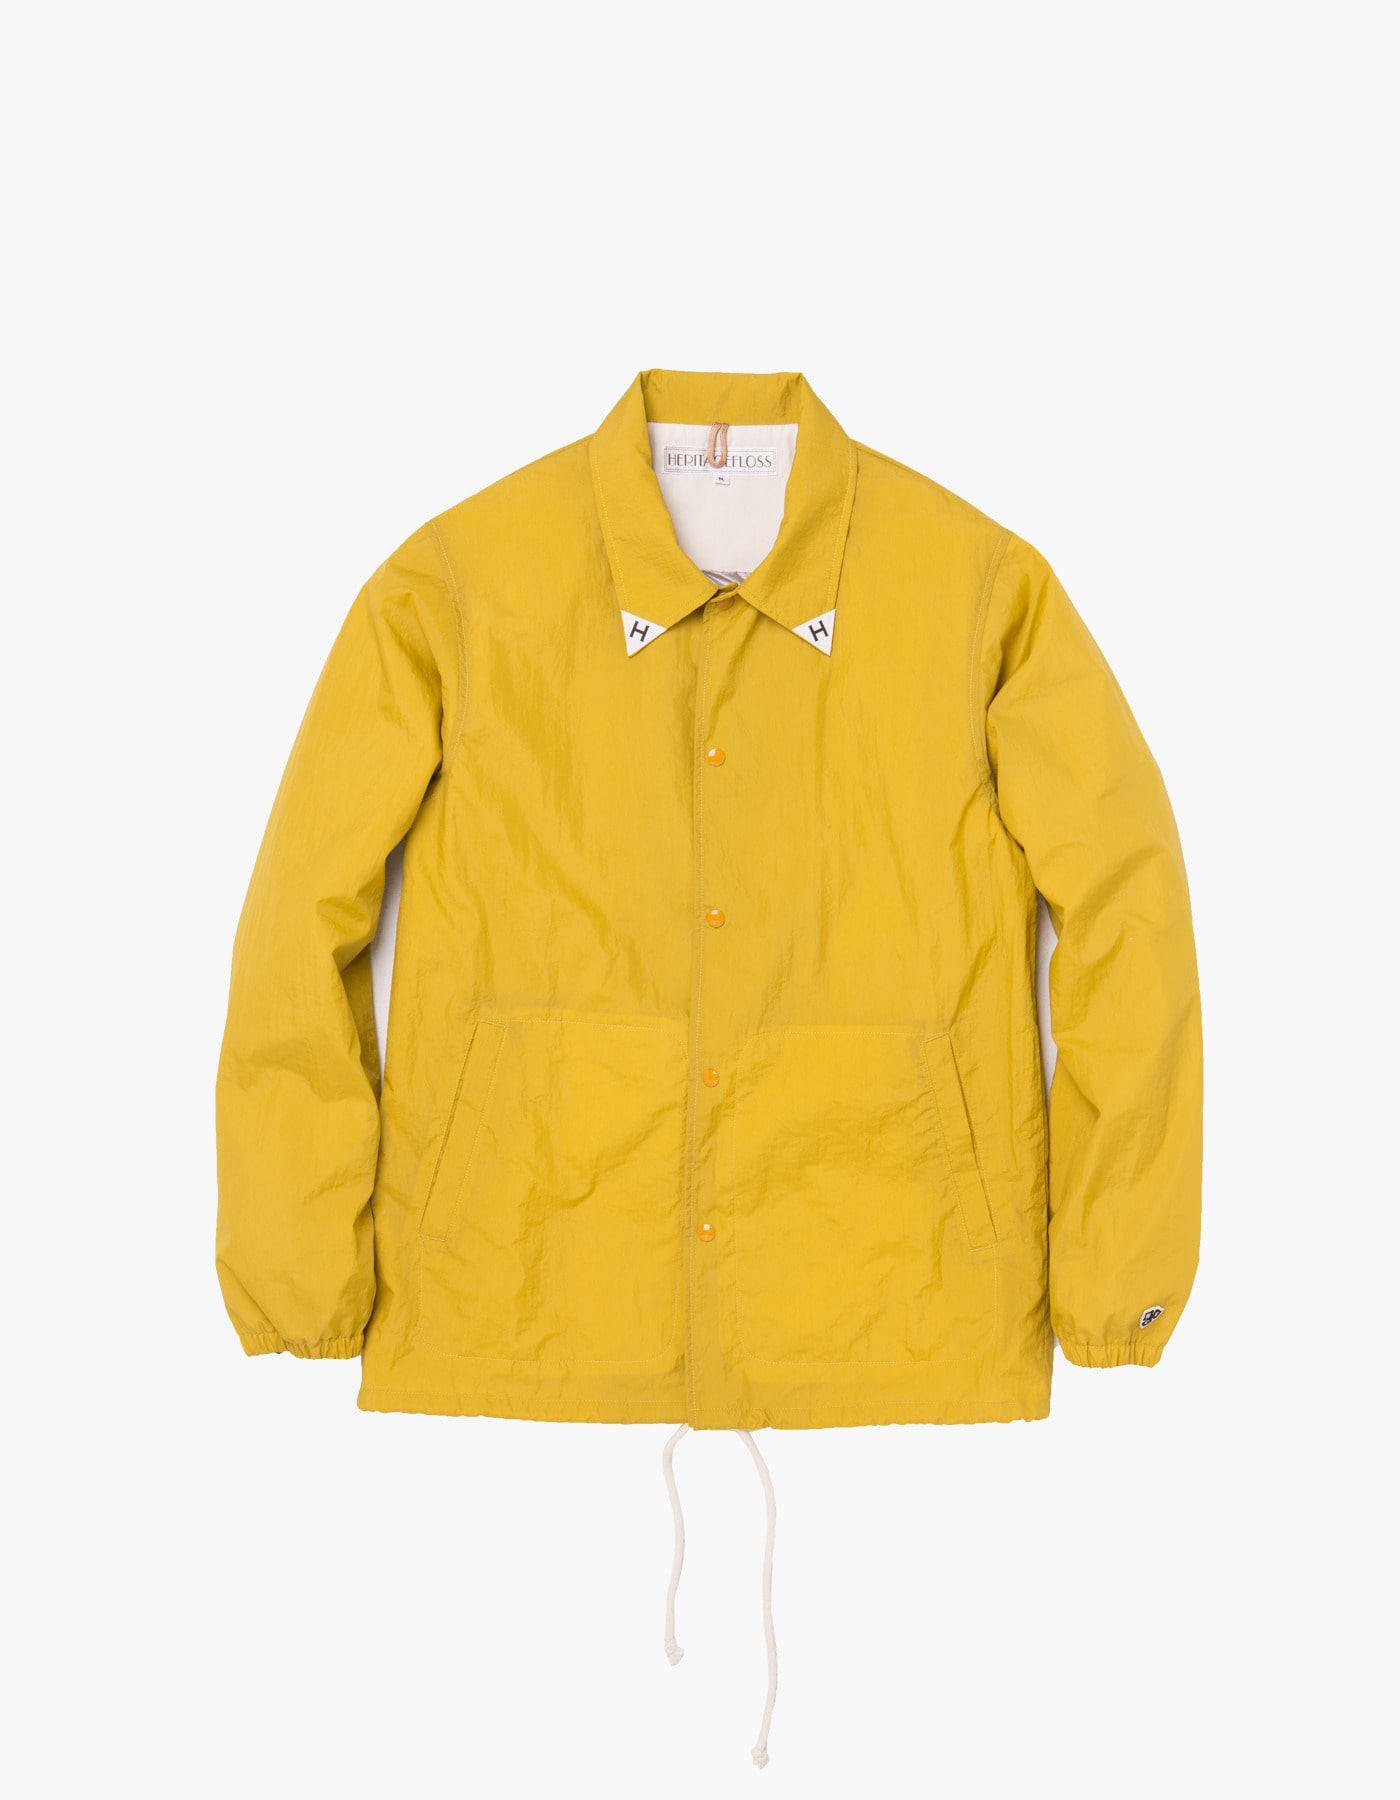 YACHT CLUB COACH JACKET / MUSTARD